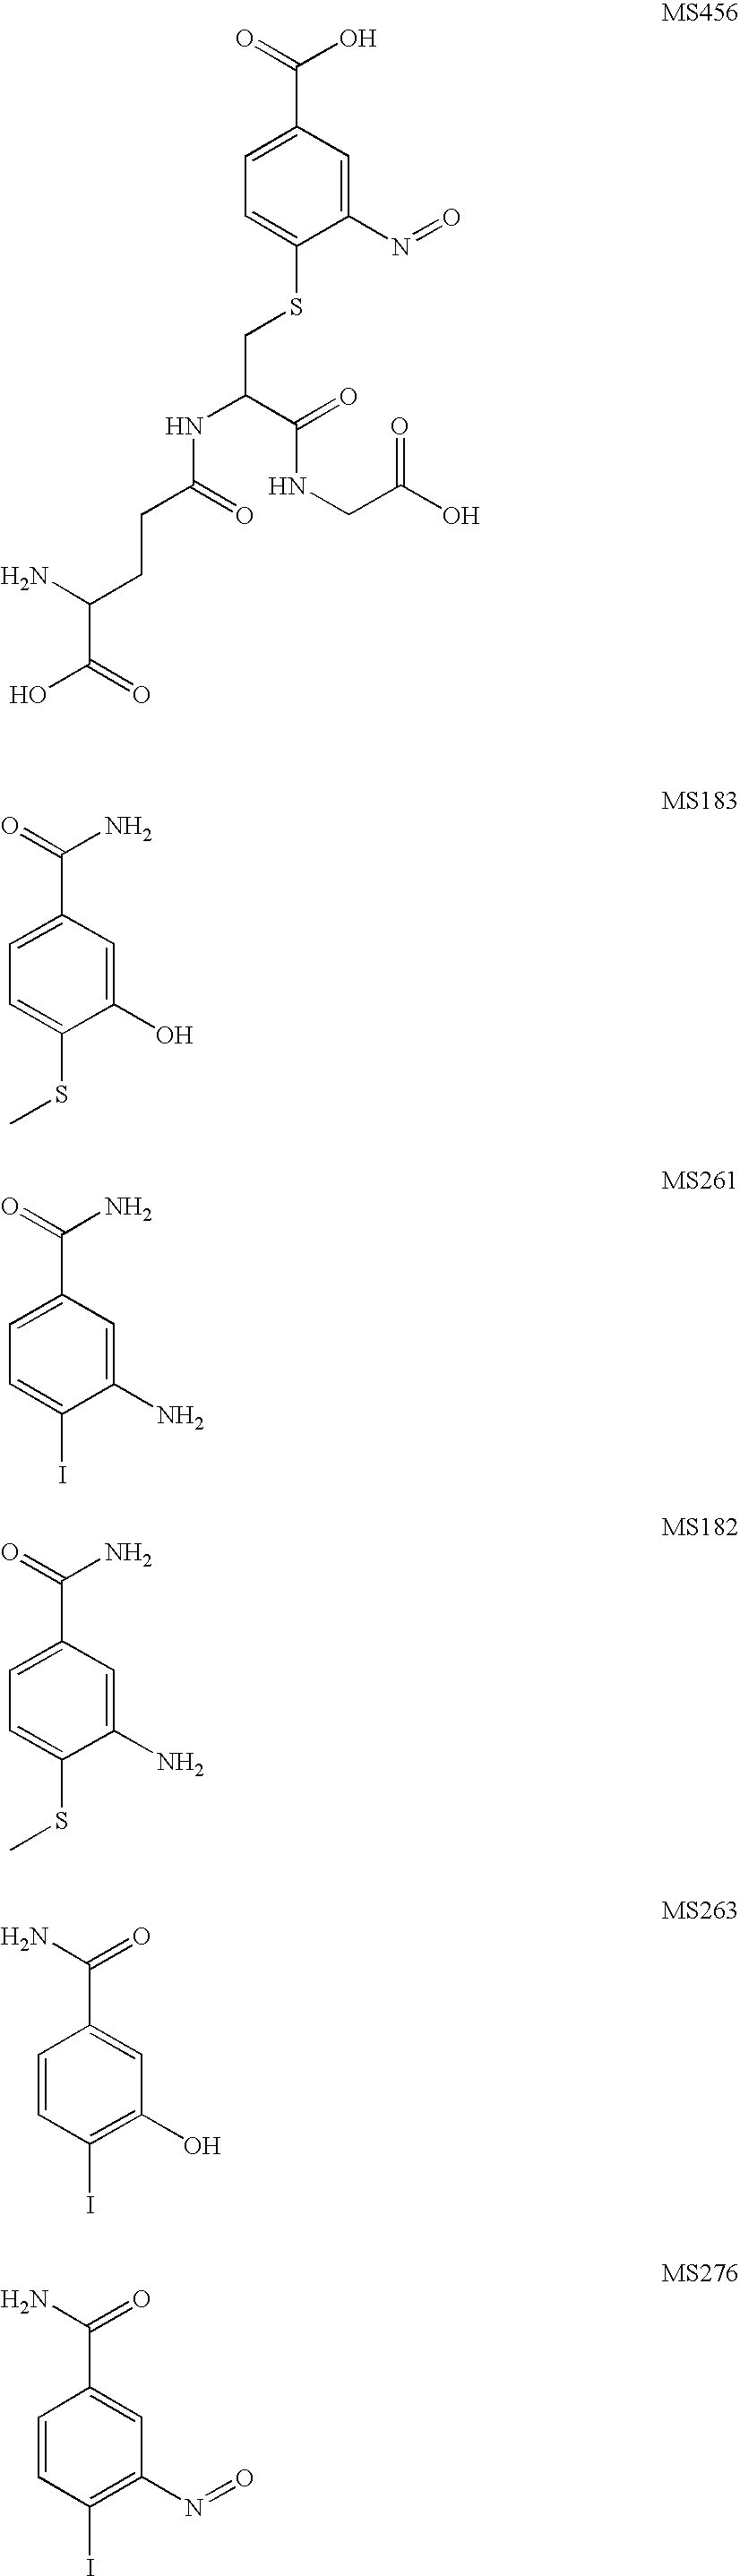 US7994222B2 - Monitoring of the inhibition of fatty acid synthesis